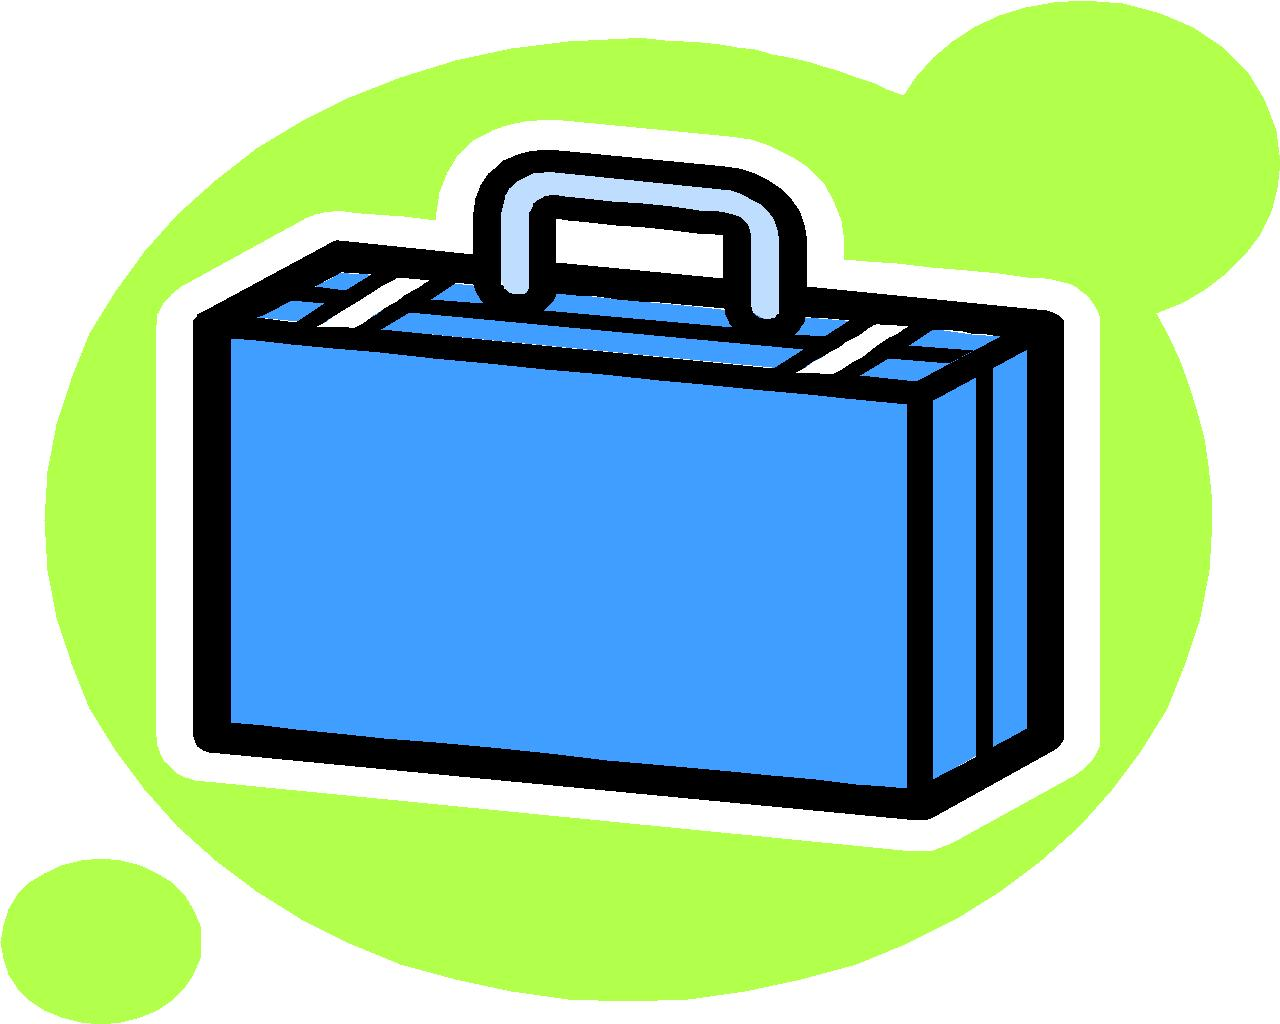 animated-suitcase-image-0005